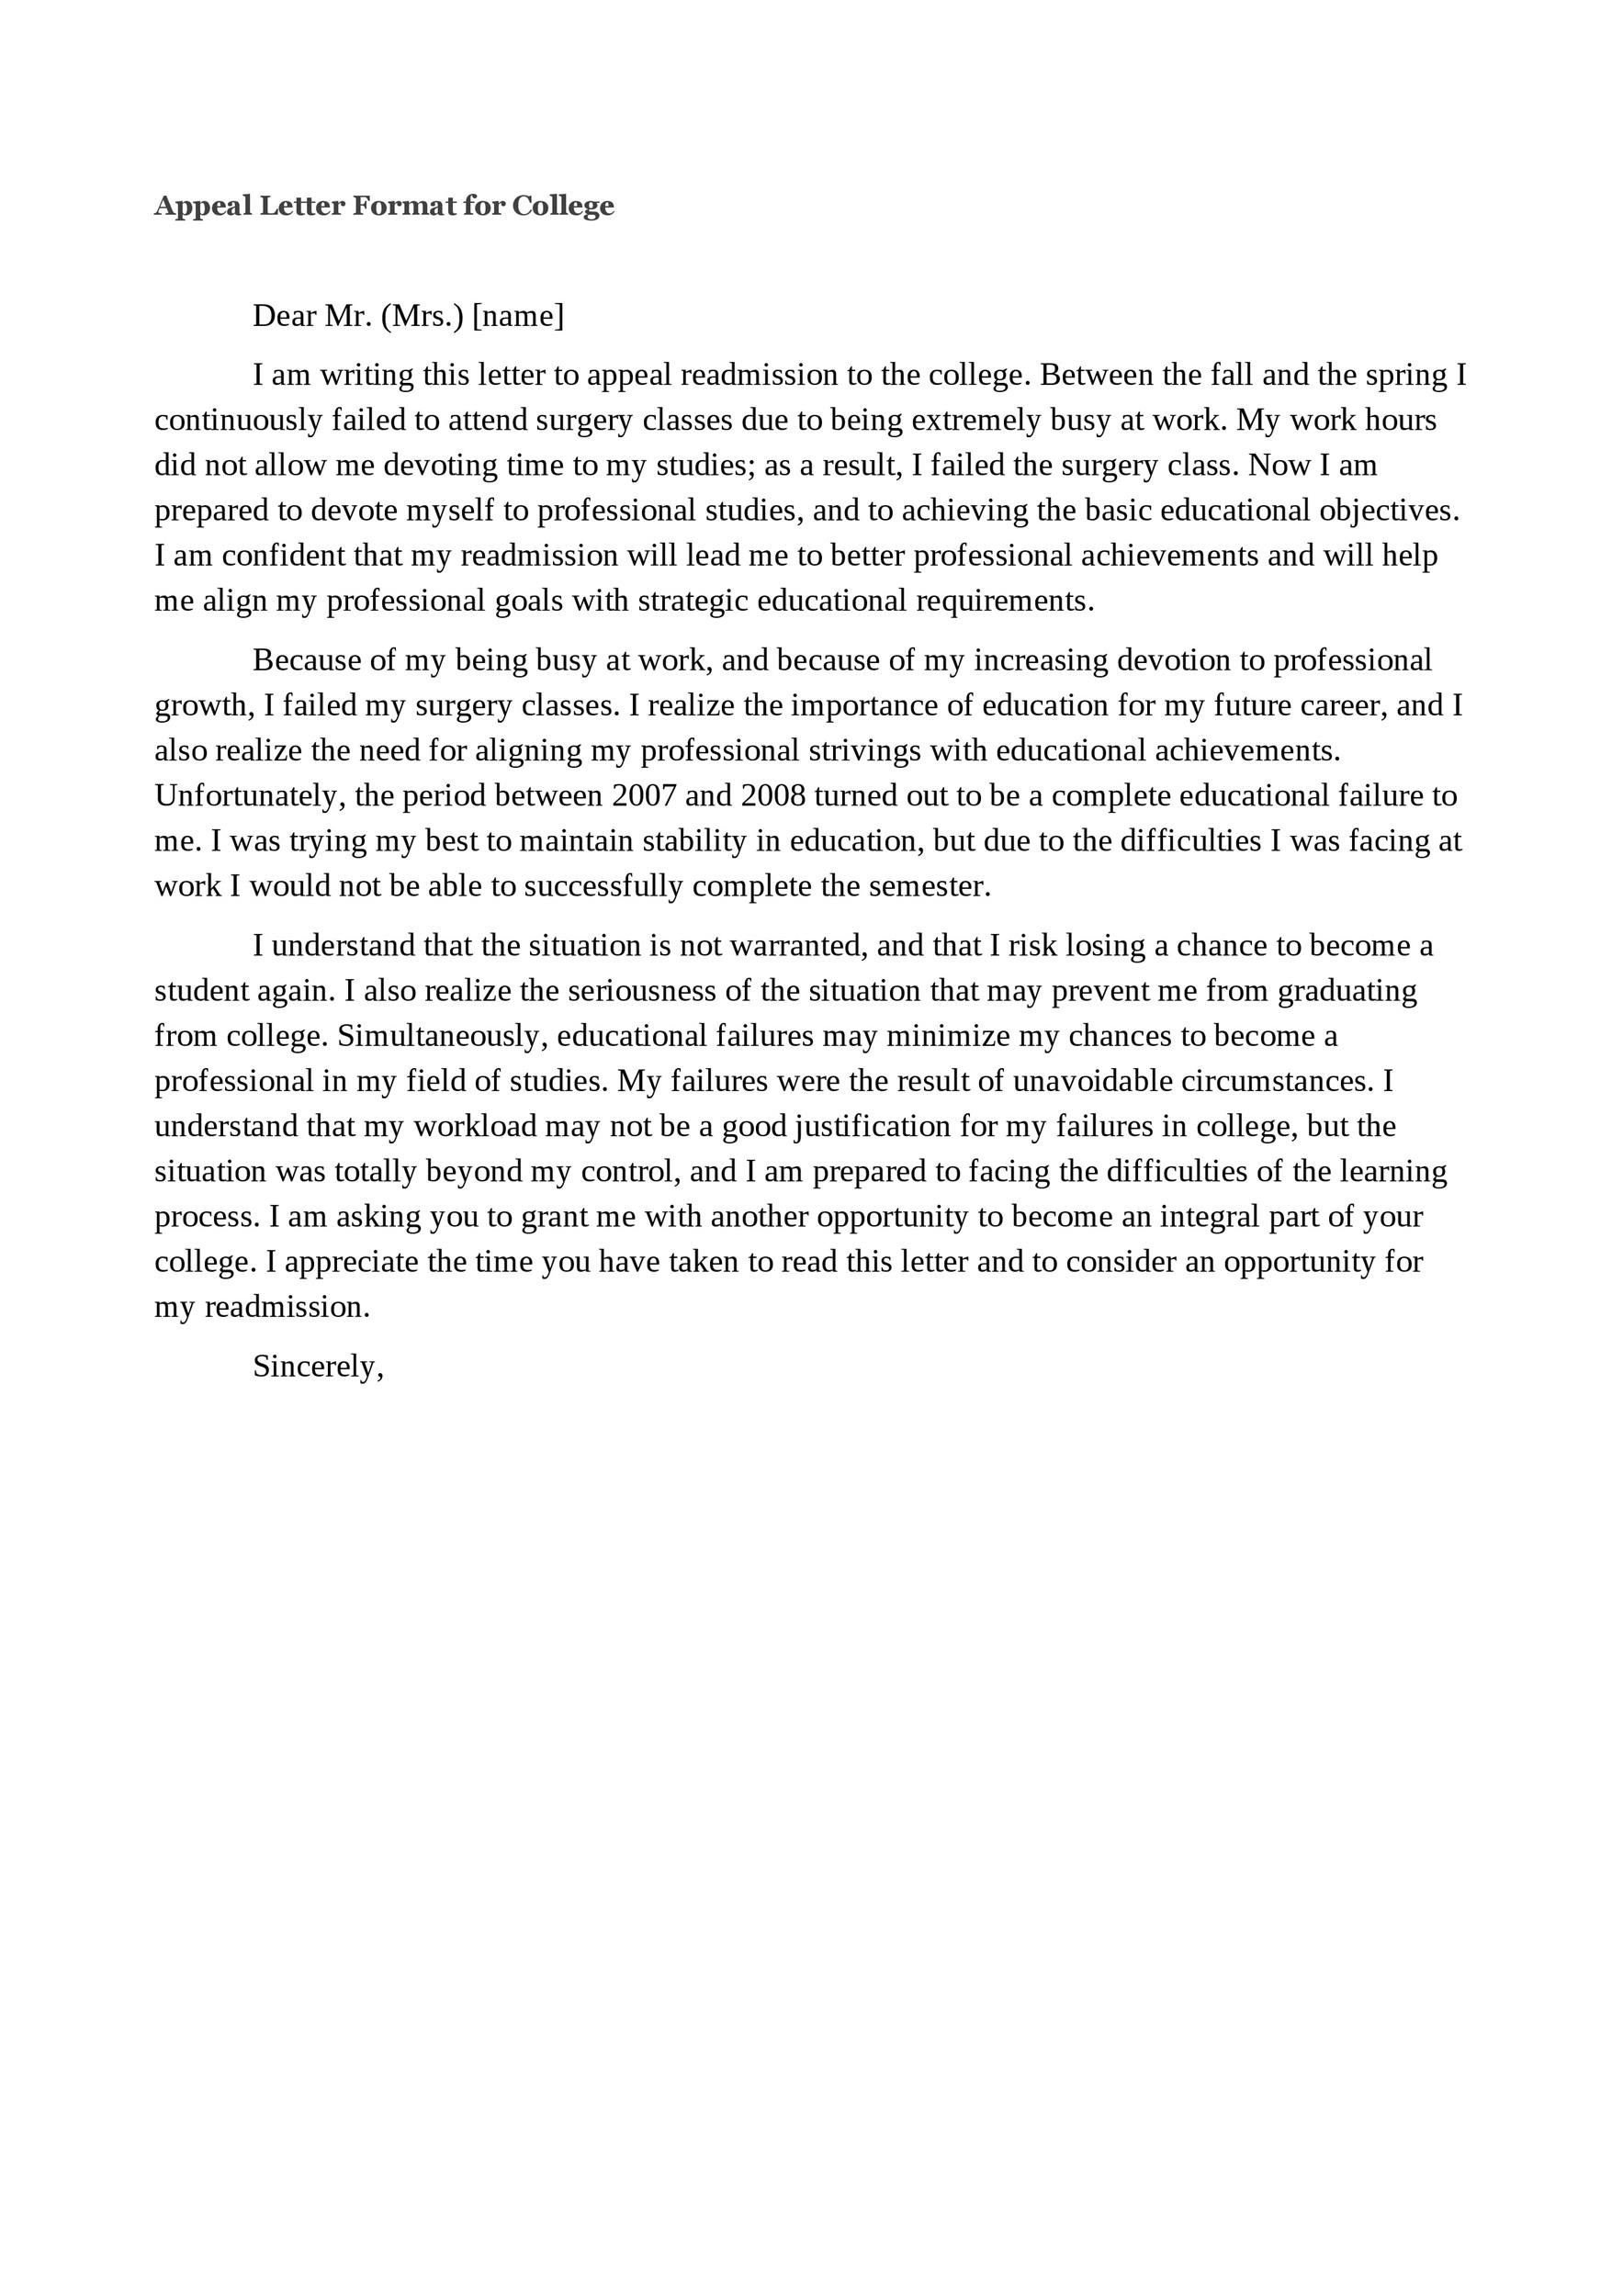 Free appeal letter 10